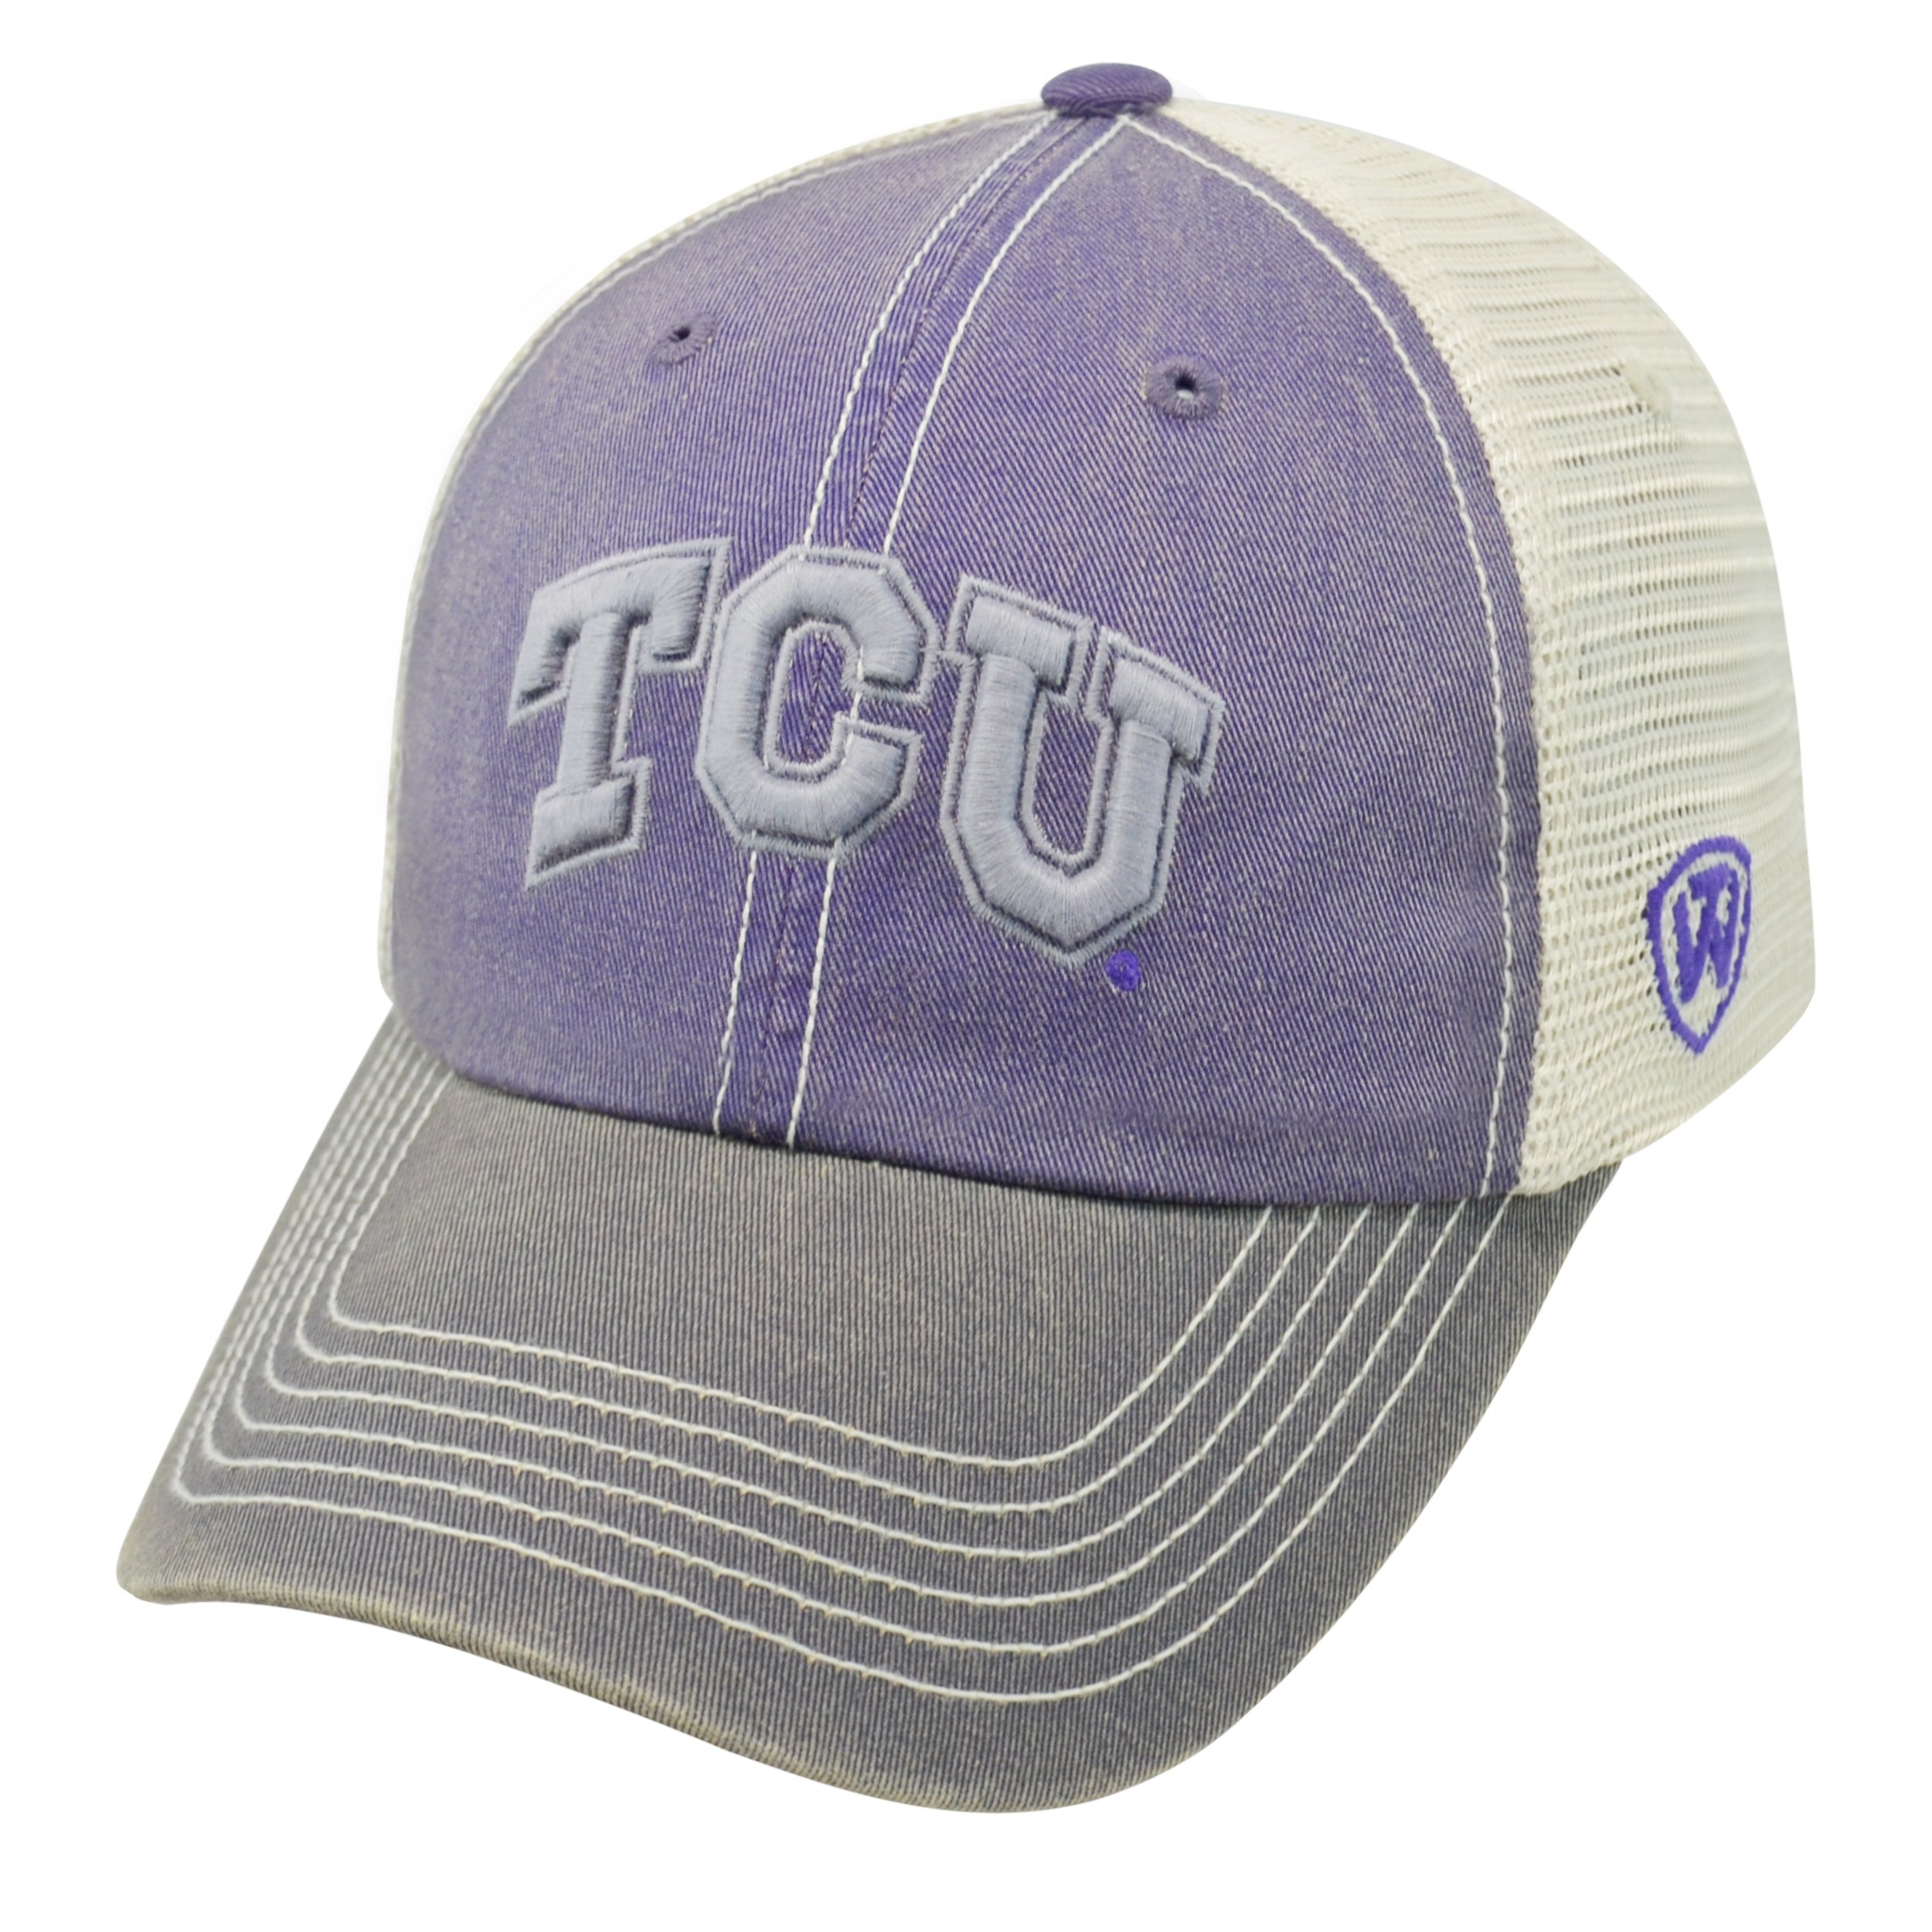 Top of the World TCU Horned Frogs Official NCAA Adjustable Youth Offroad Hat Cap 174600